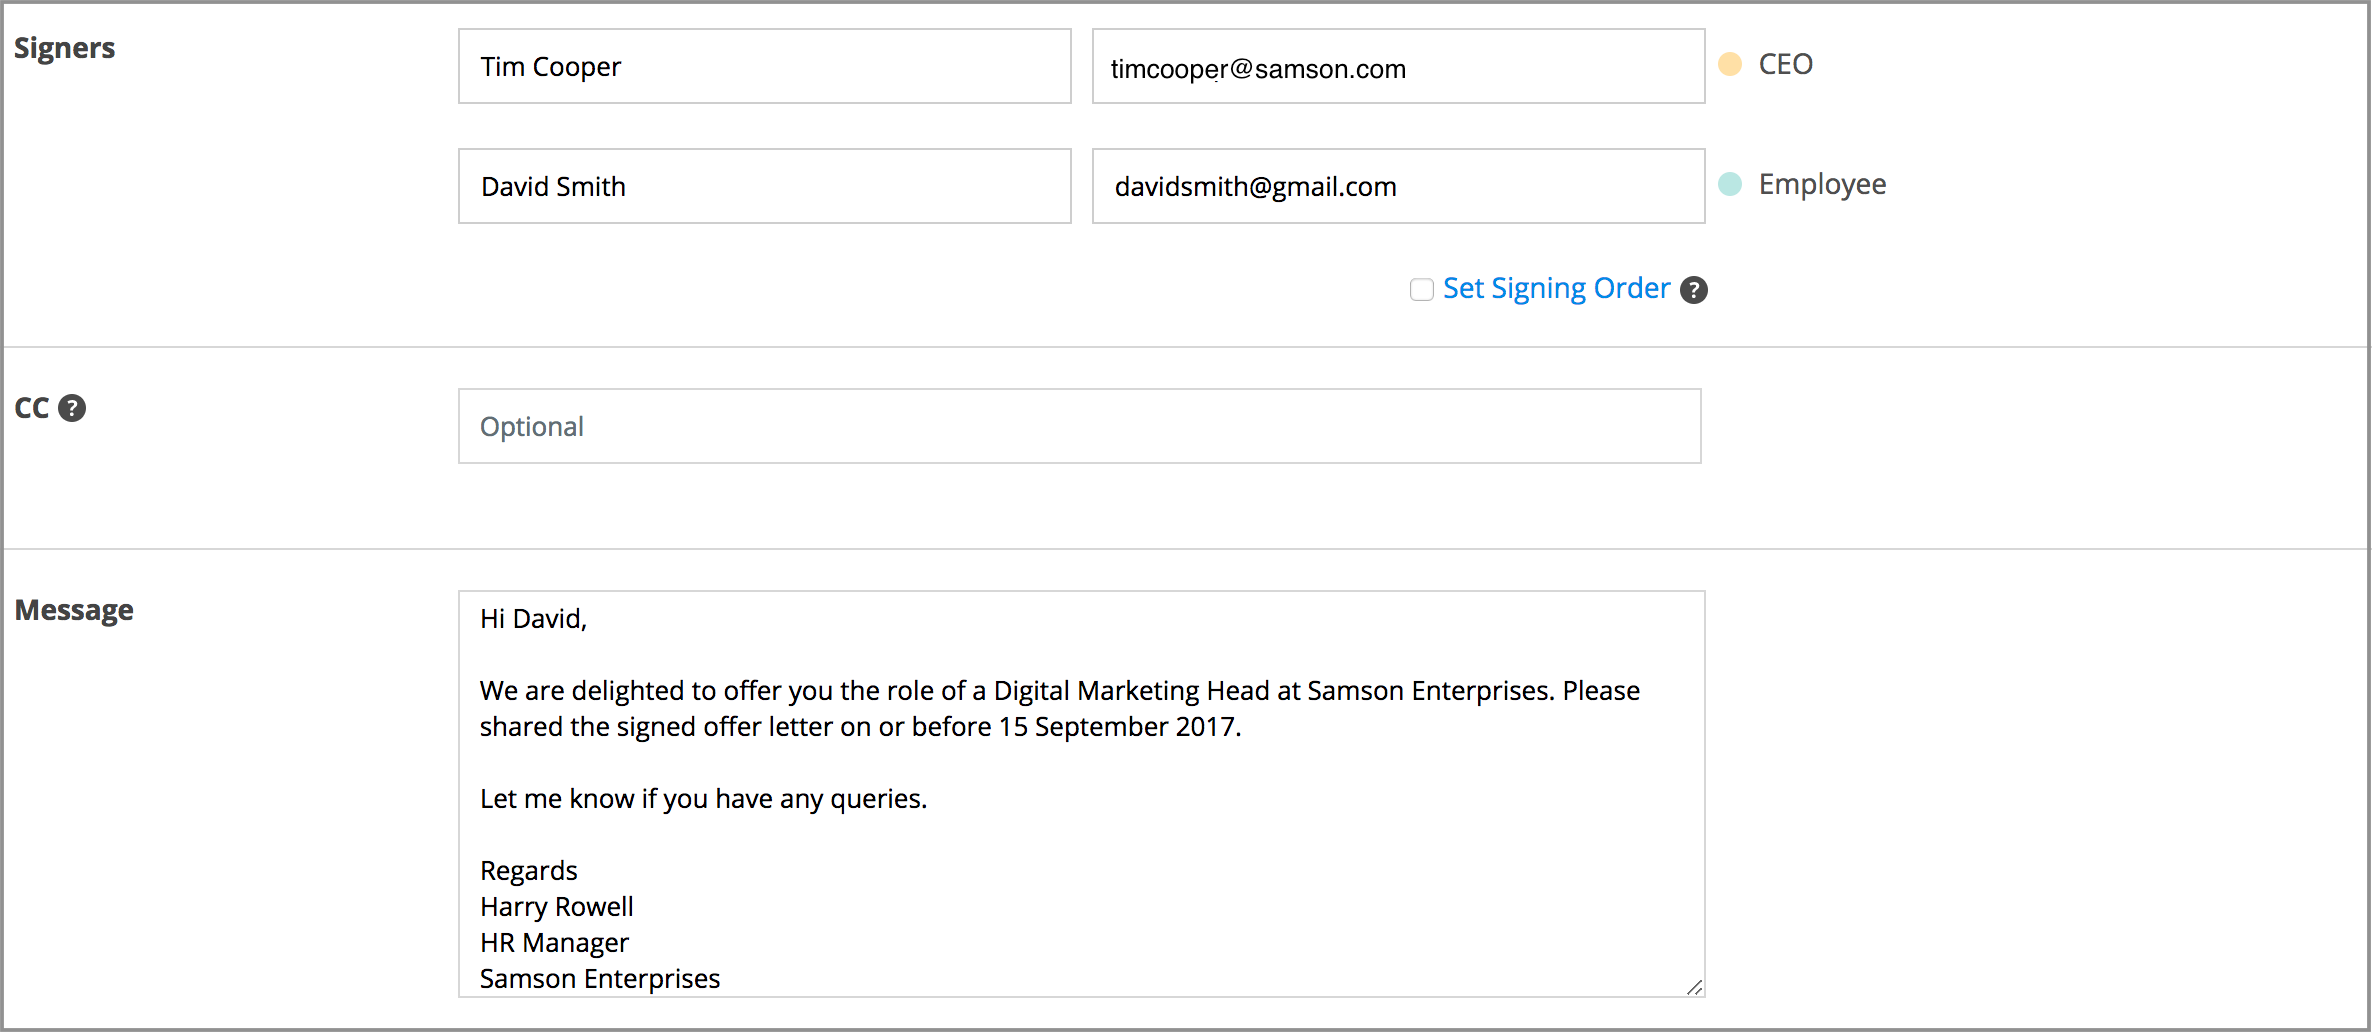 Add-signee-email-addresses-and-type-in-a-message-to-automate-HR-workflow